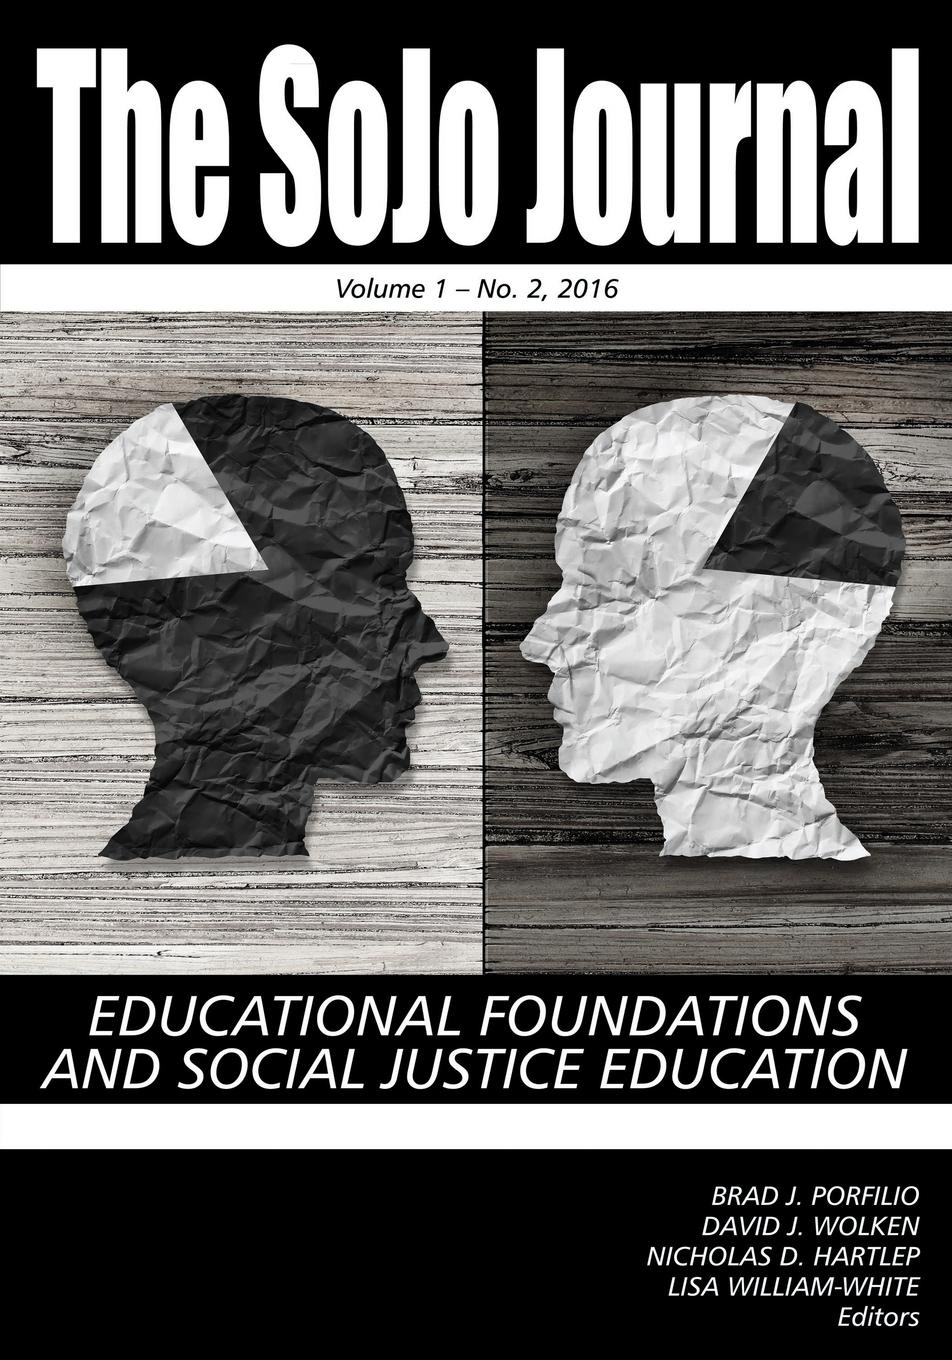 The SoJo Journal Educational Foundations and Social Justice Education Volume 1 Number 2 2015 boris shulitski the ideological foundations of technological singularity